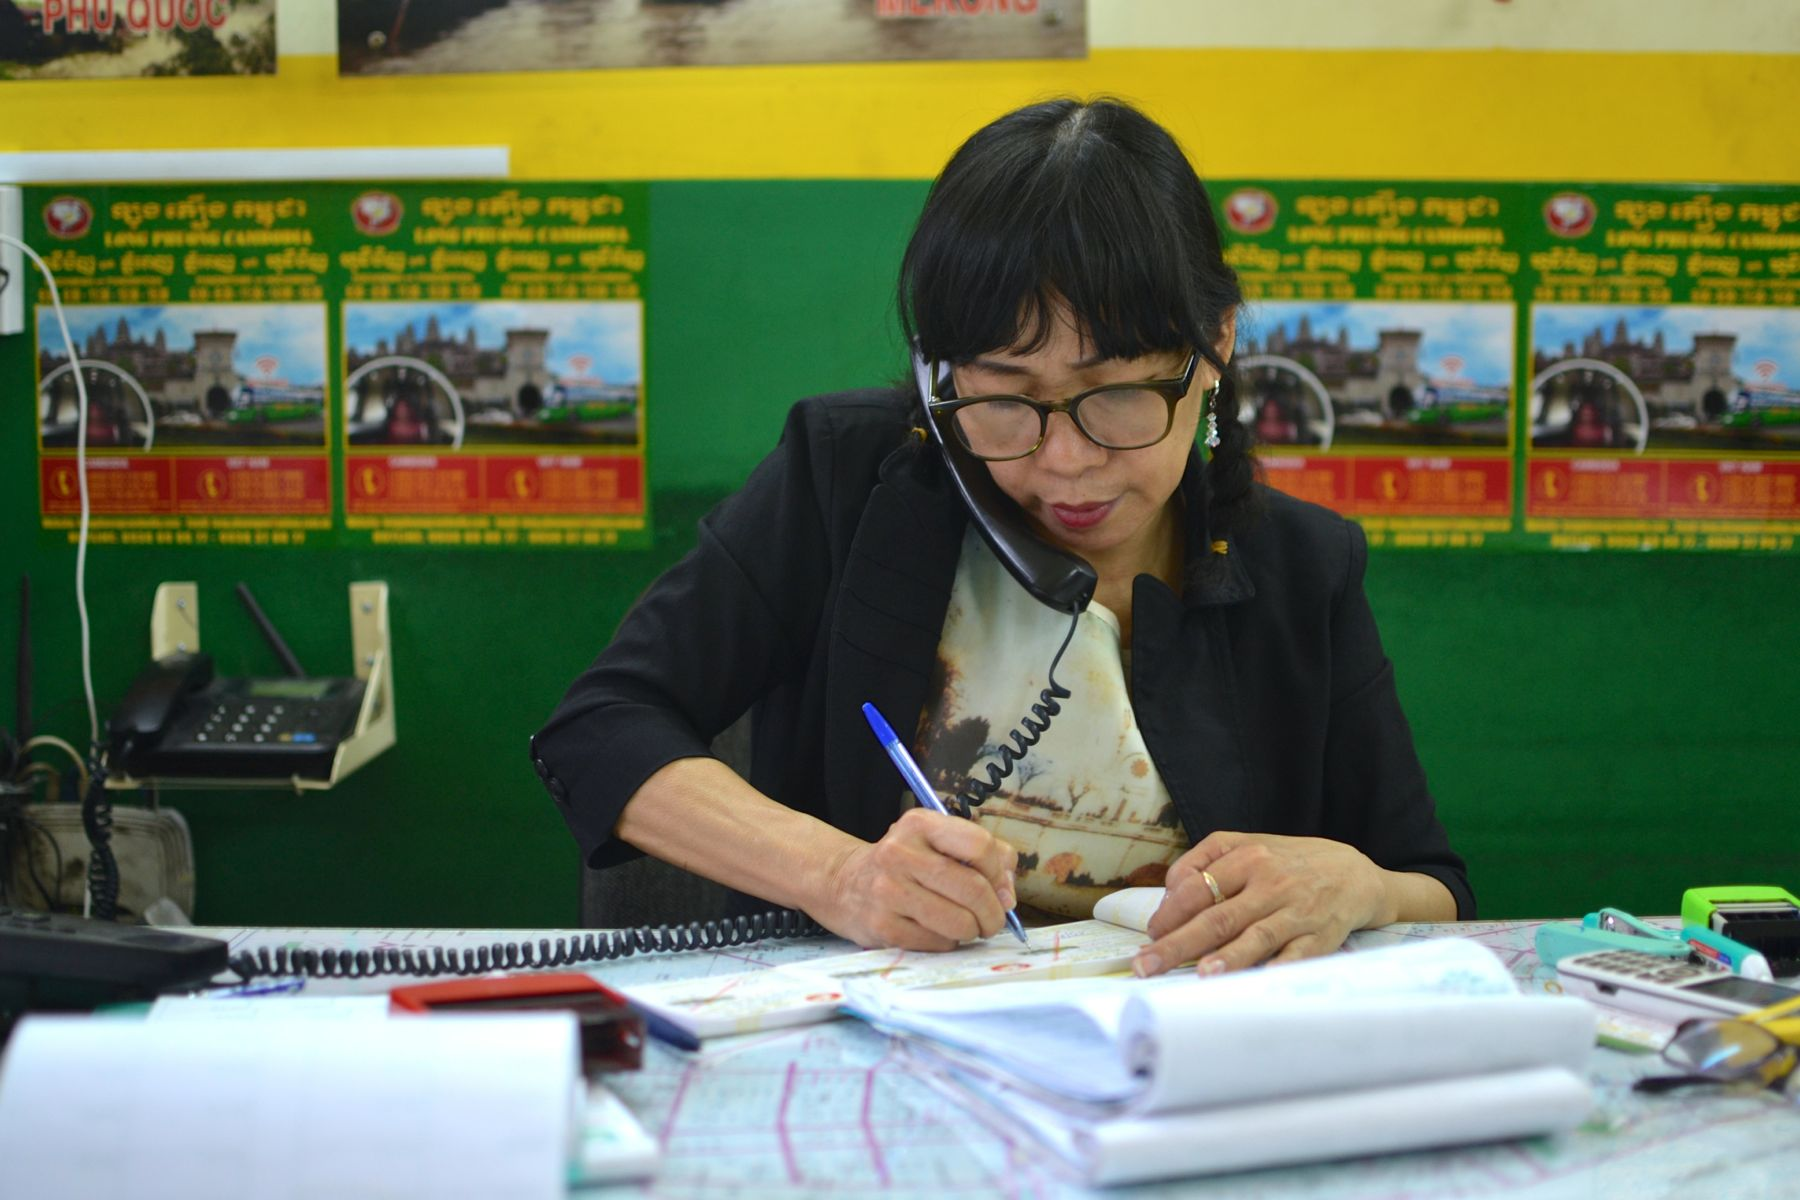 A Vietnamese travel agent - multitasking and just as busy as the ones back home